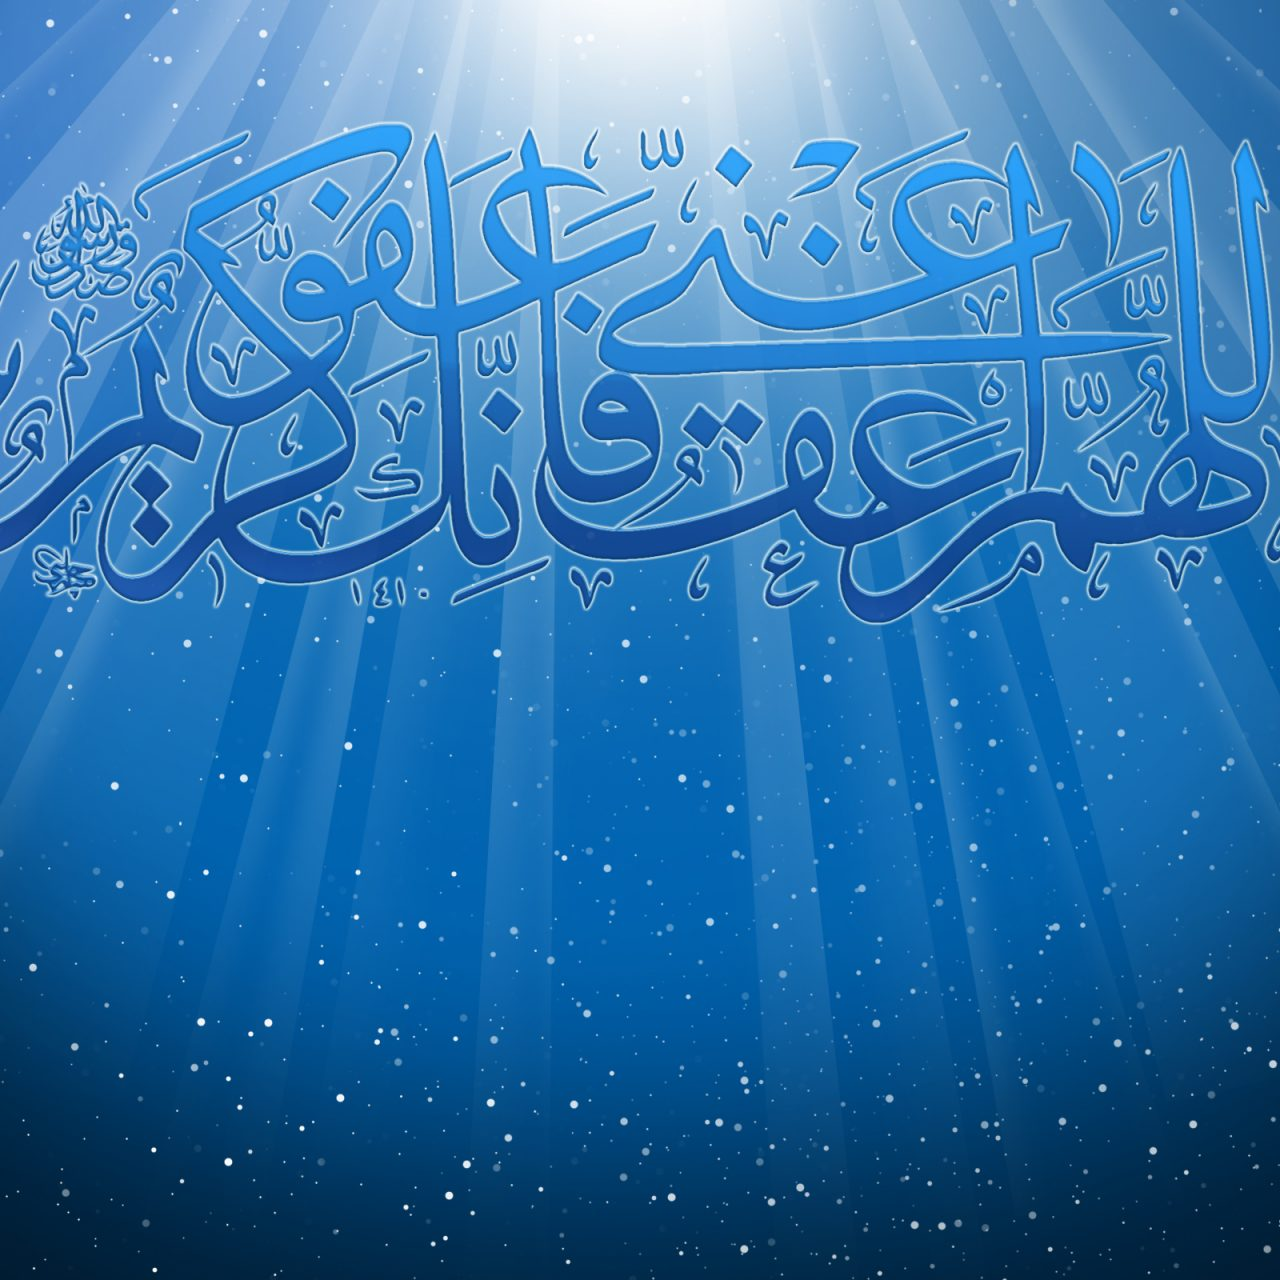 Islamic Wallpapers 4k Hd Wallpapers Hd Backgrounds